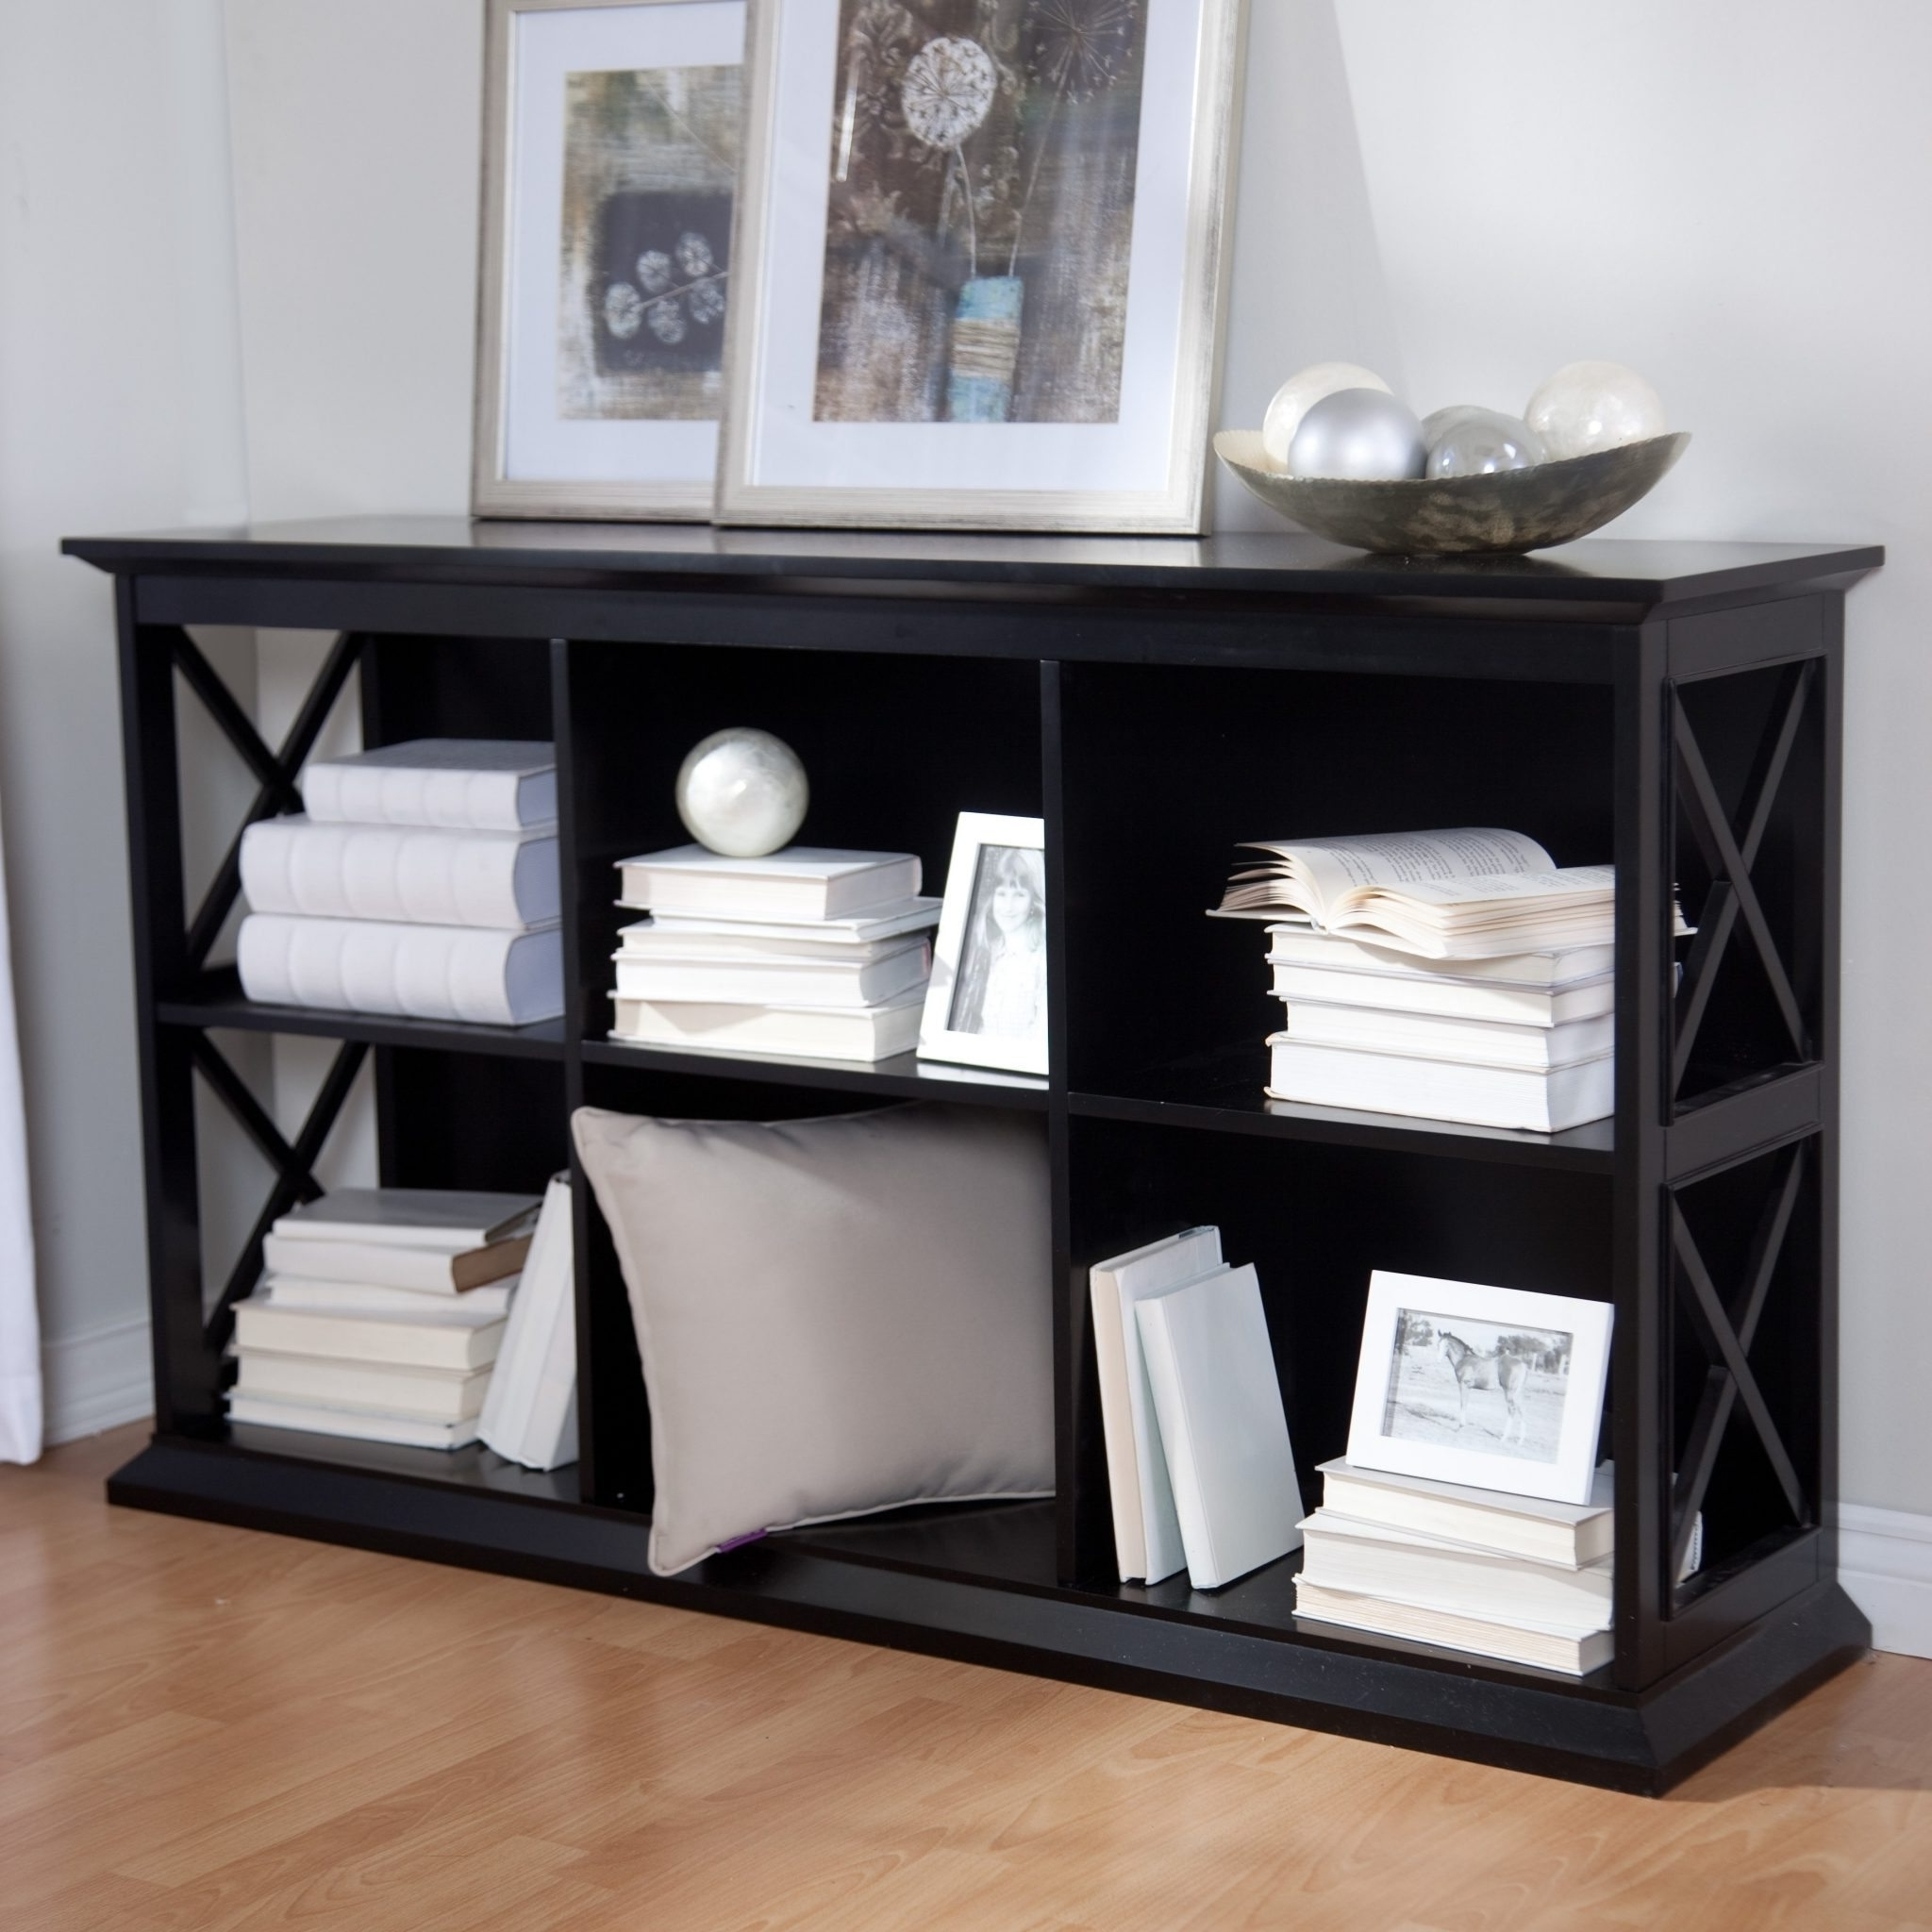 white bookcase unit ladder barrister rail dark antique shelving oak bookshelf bookcases a black sale small wooden furniture drawer shelves with shelf step for and lateral leaning cabinet hook library file wood